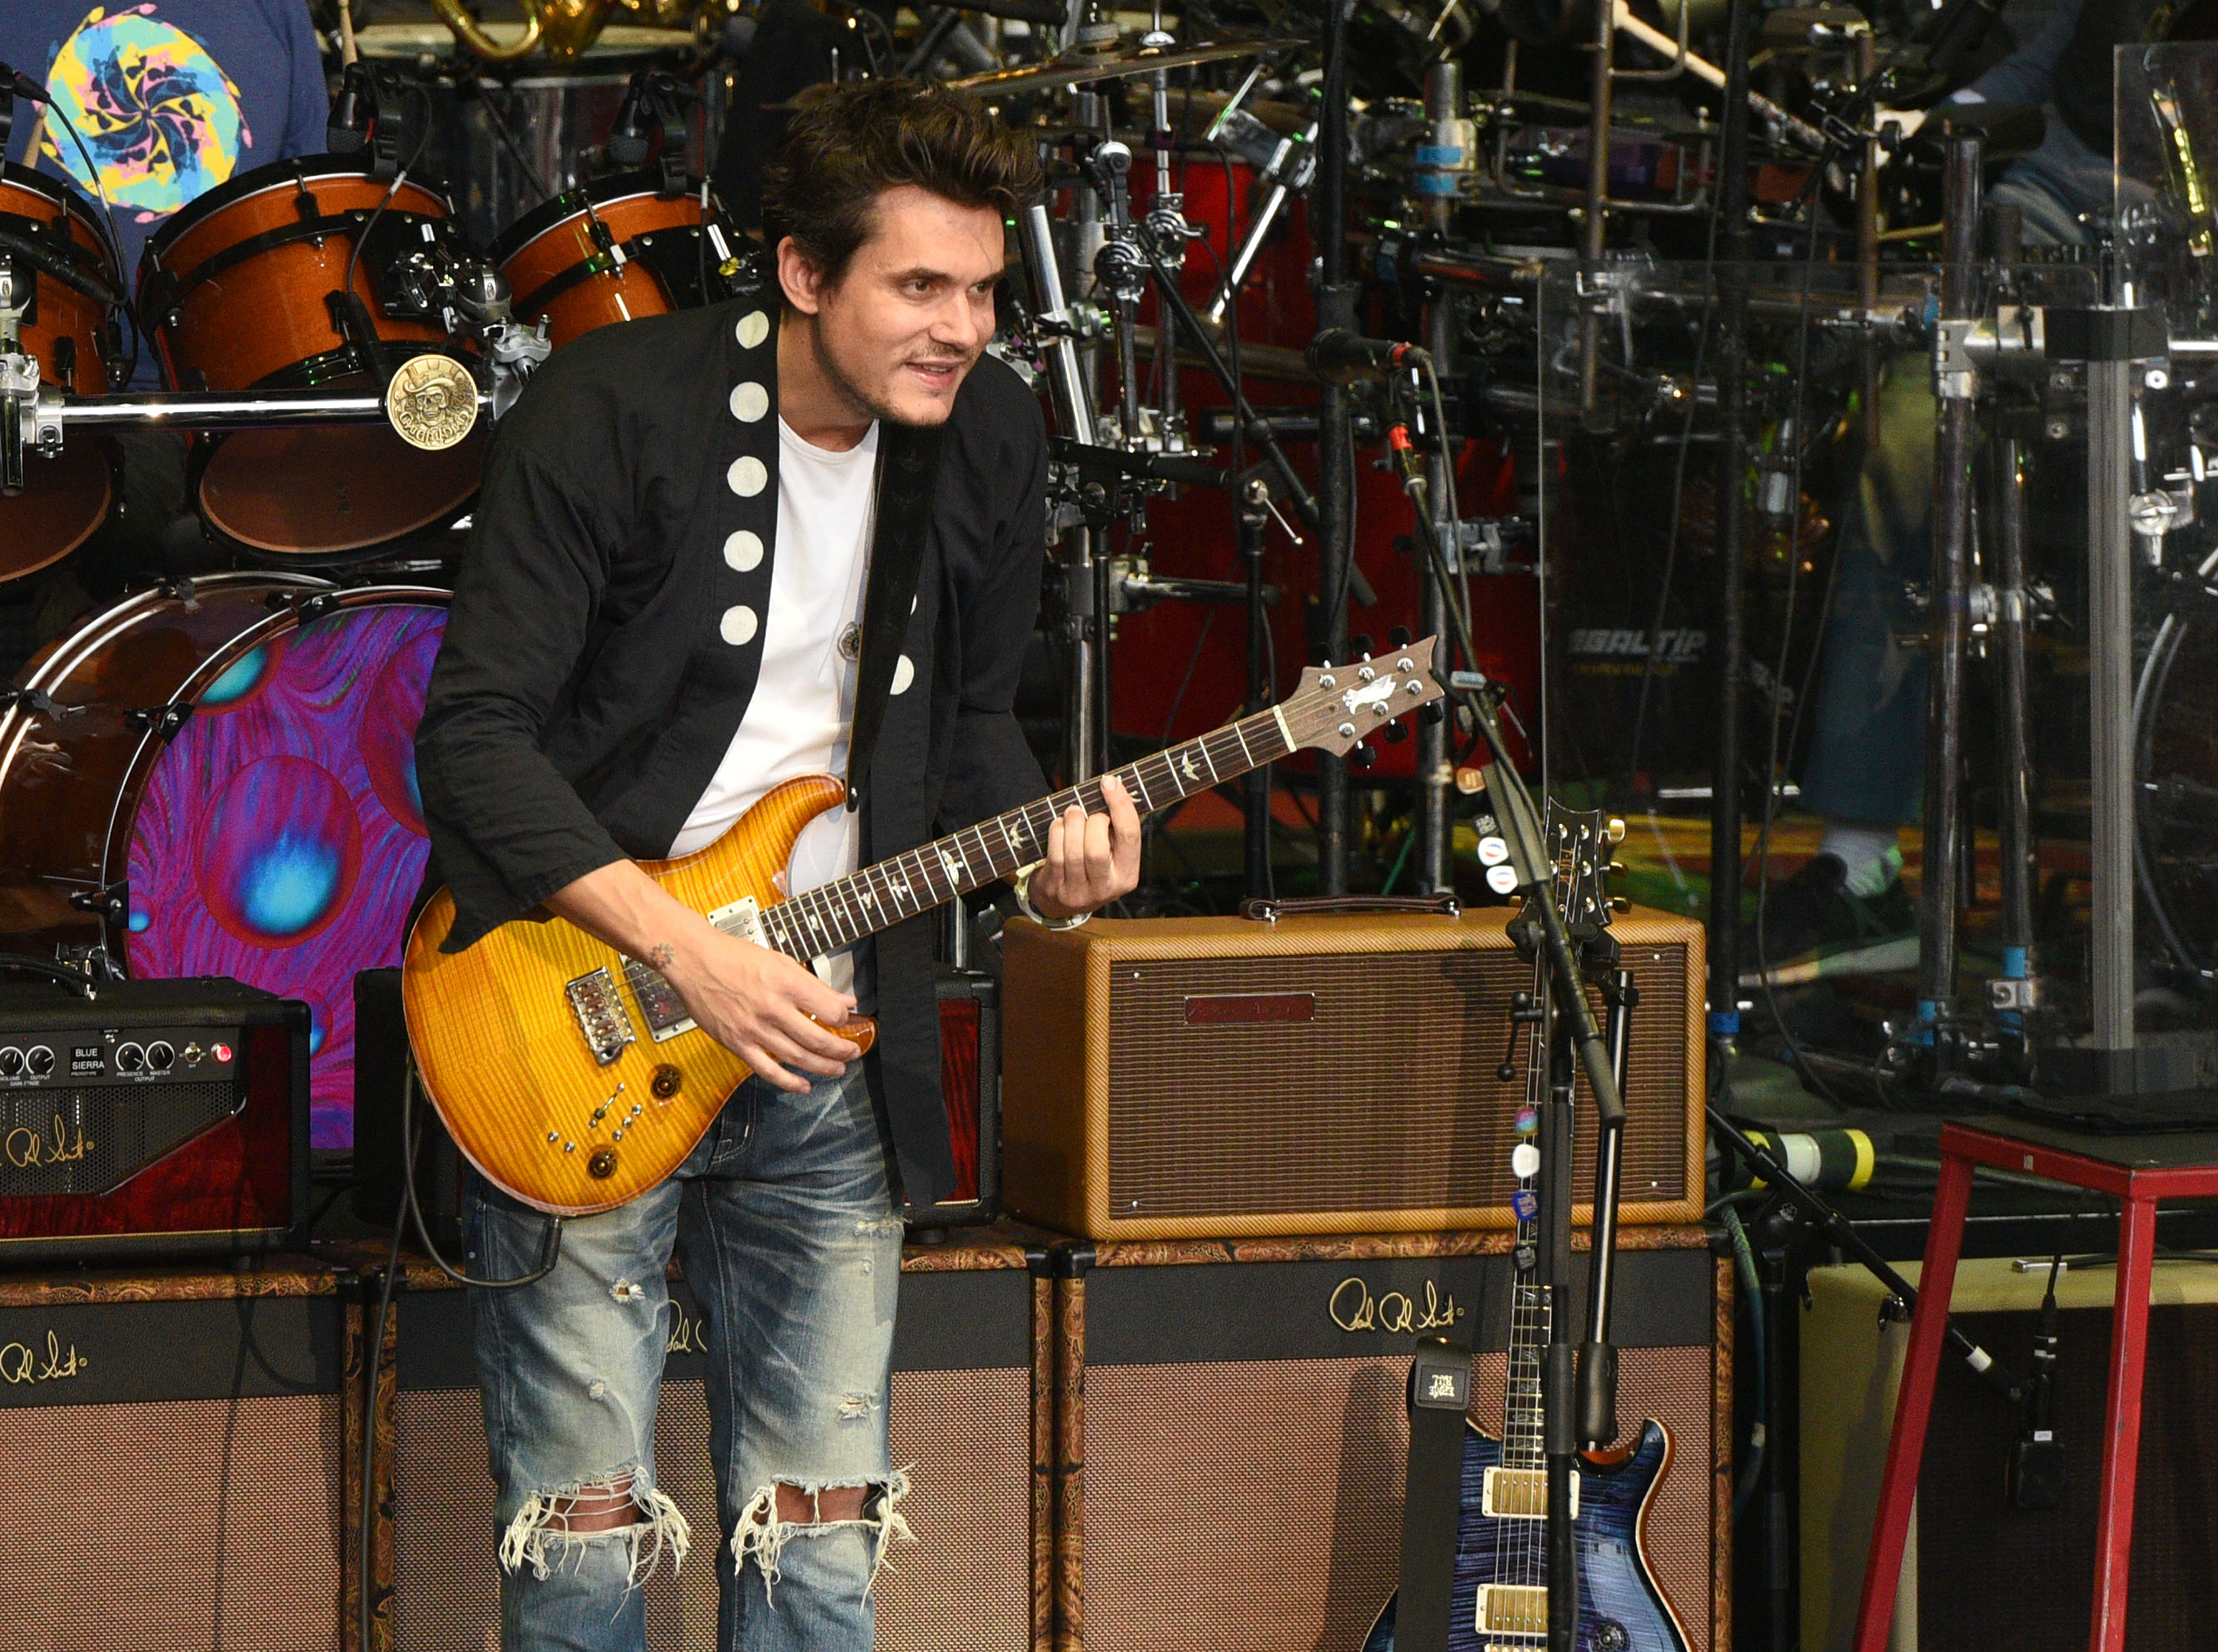 John Mayer turned into a beauty vlogger on Snapchat and it's pretty hilarious